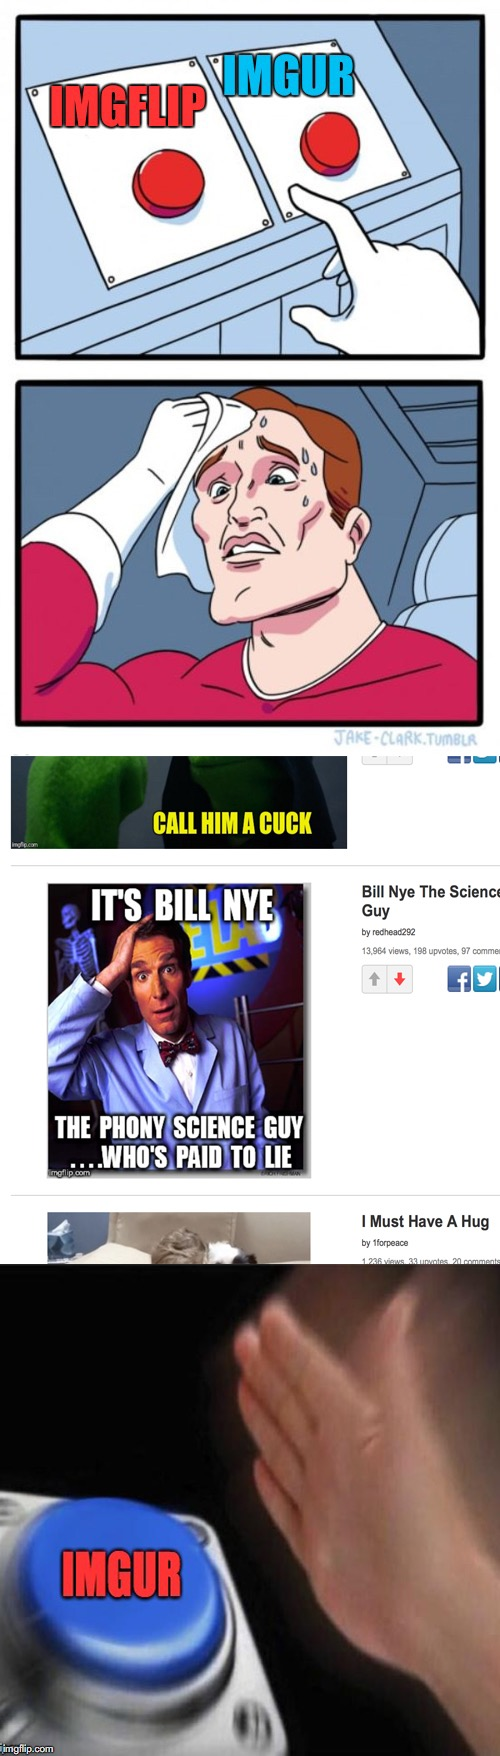 This place is a dumpster fire. | image tagged in imgflip,imgur,two buttons,bill nye the science guy,climate change | made w/ Imgflip meme maker